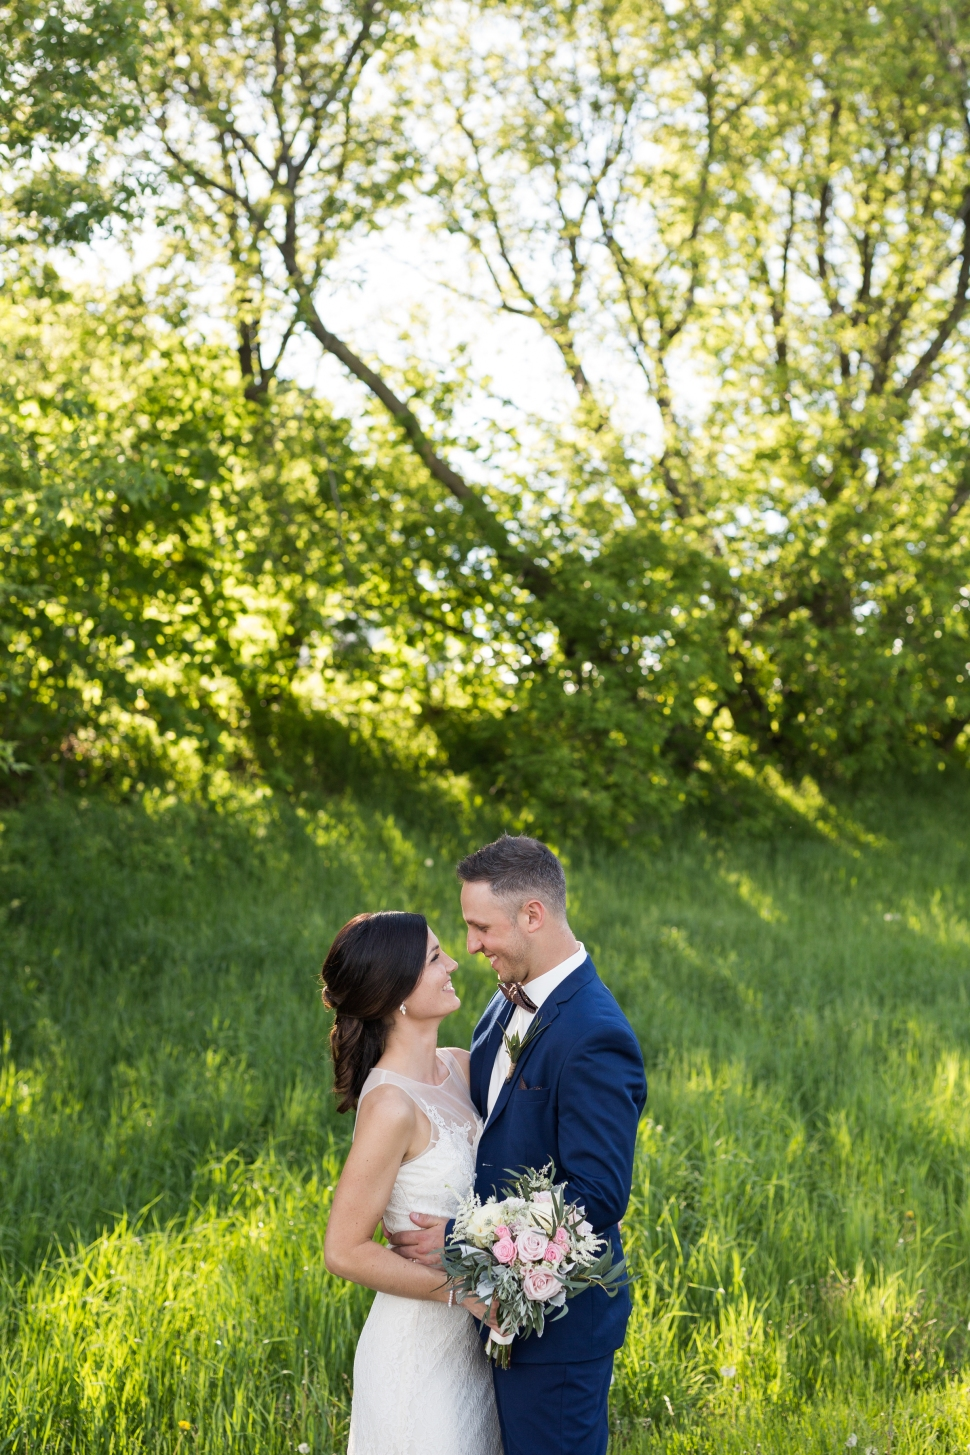 montreal_lifestyle_wedding_photographer_photography_orchard_winery_photographe_mariage_vignoble_rougemont-46